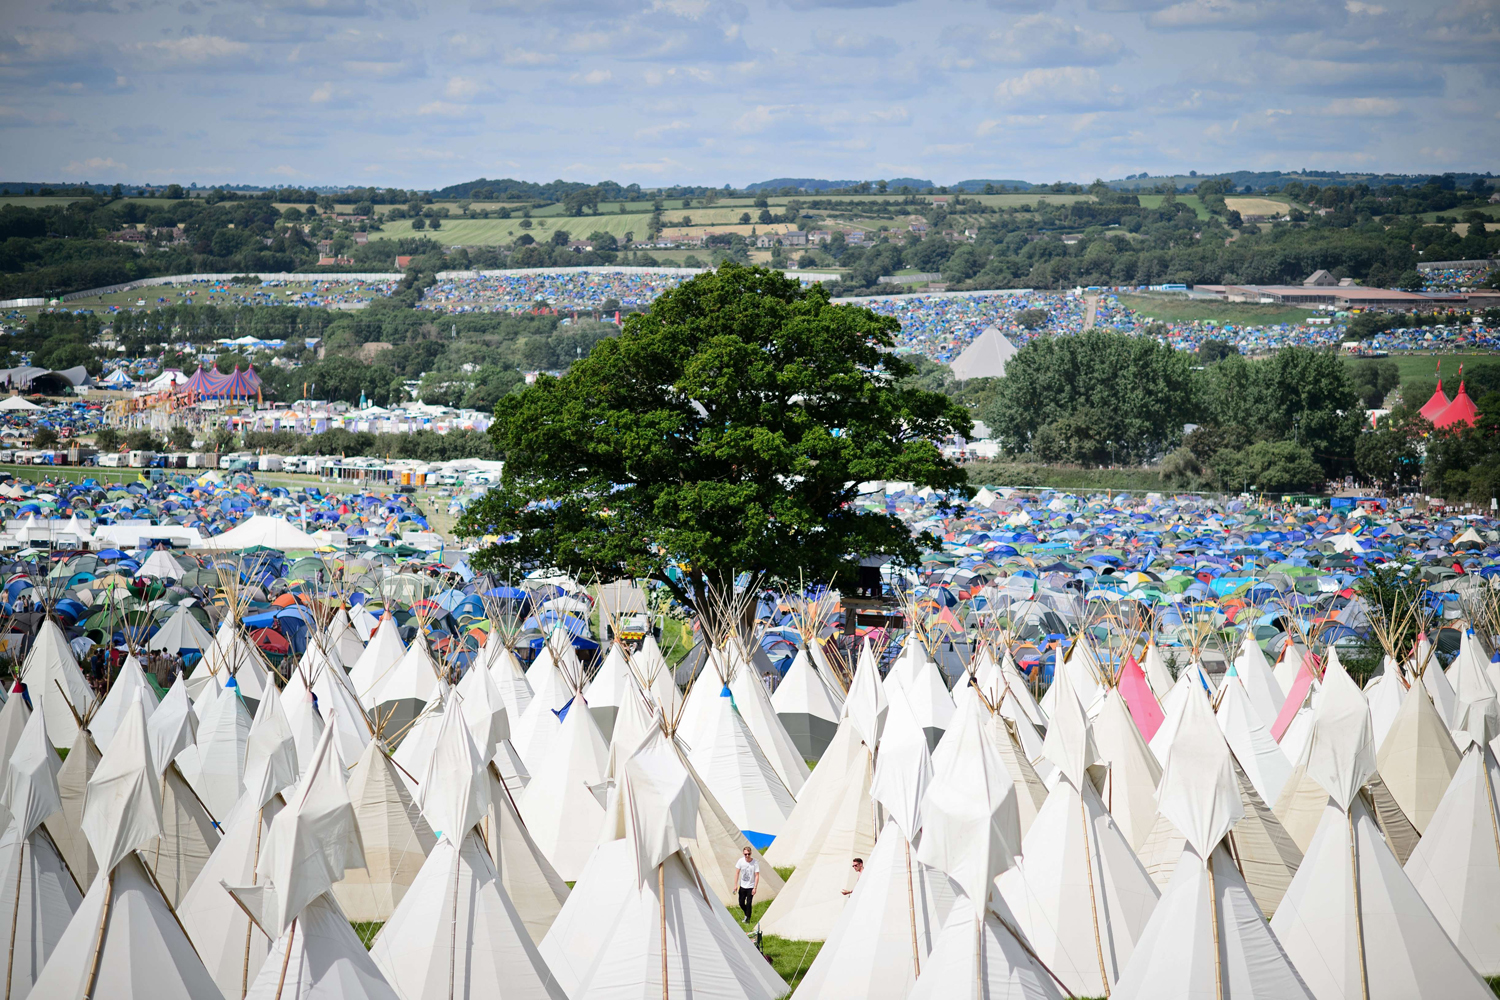 Jun. 25, 2014. Finishing touches are made to the tipis as the gates open at the Glastonbury Festival of Music and Performing Arts in Somerset, southwest England.